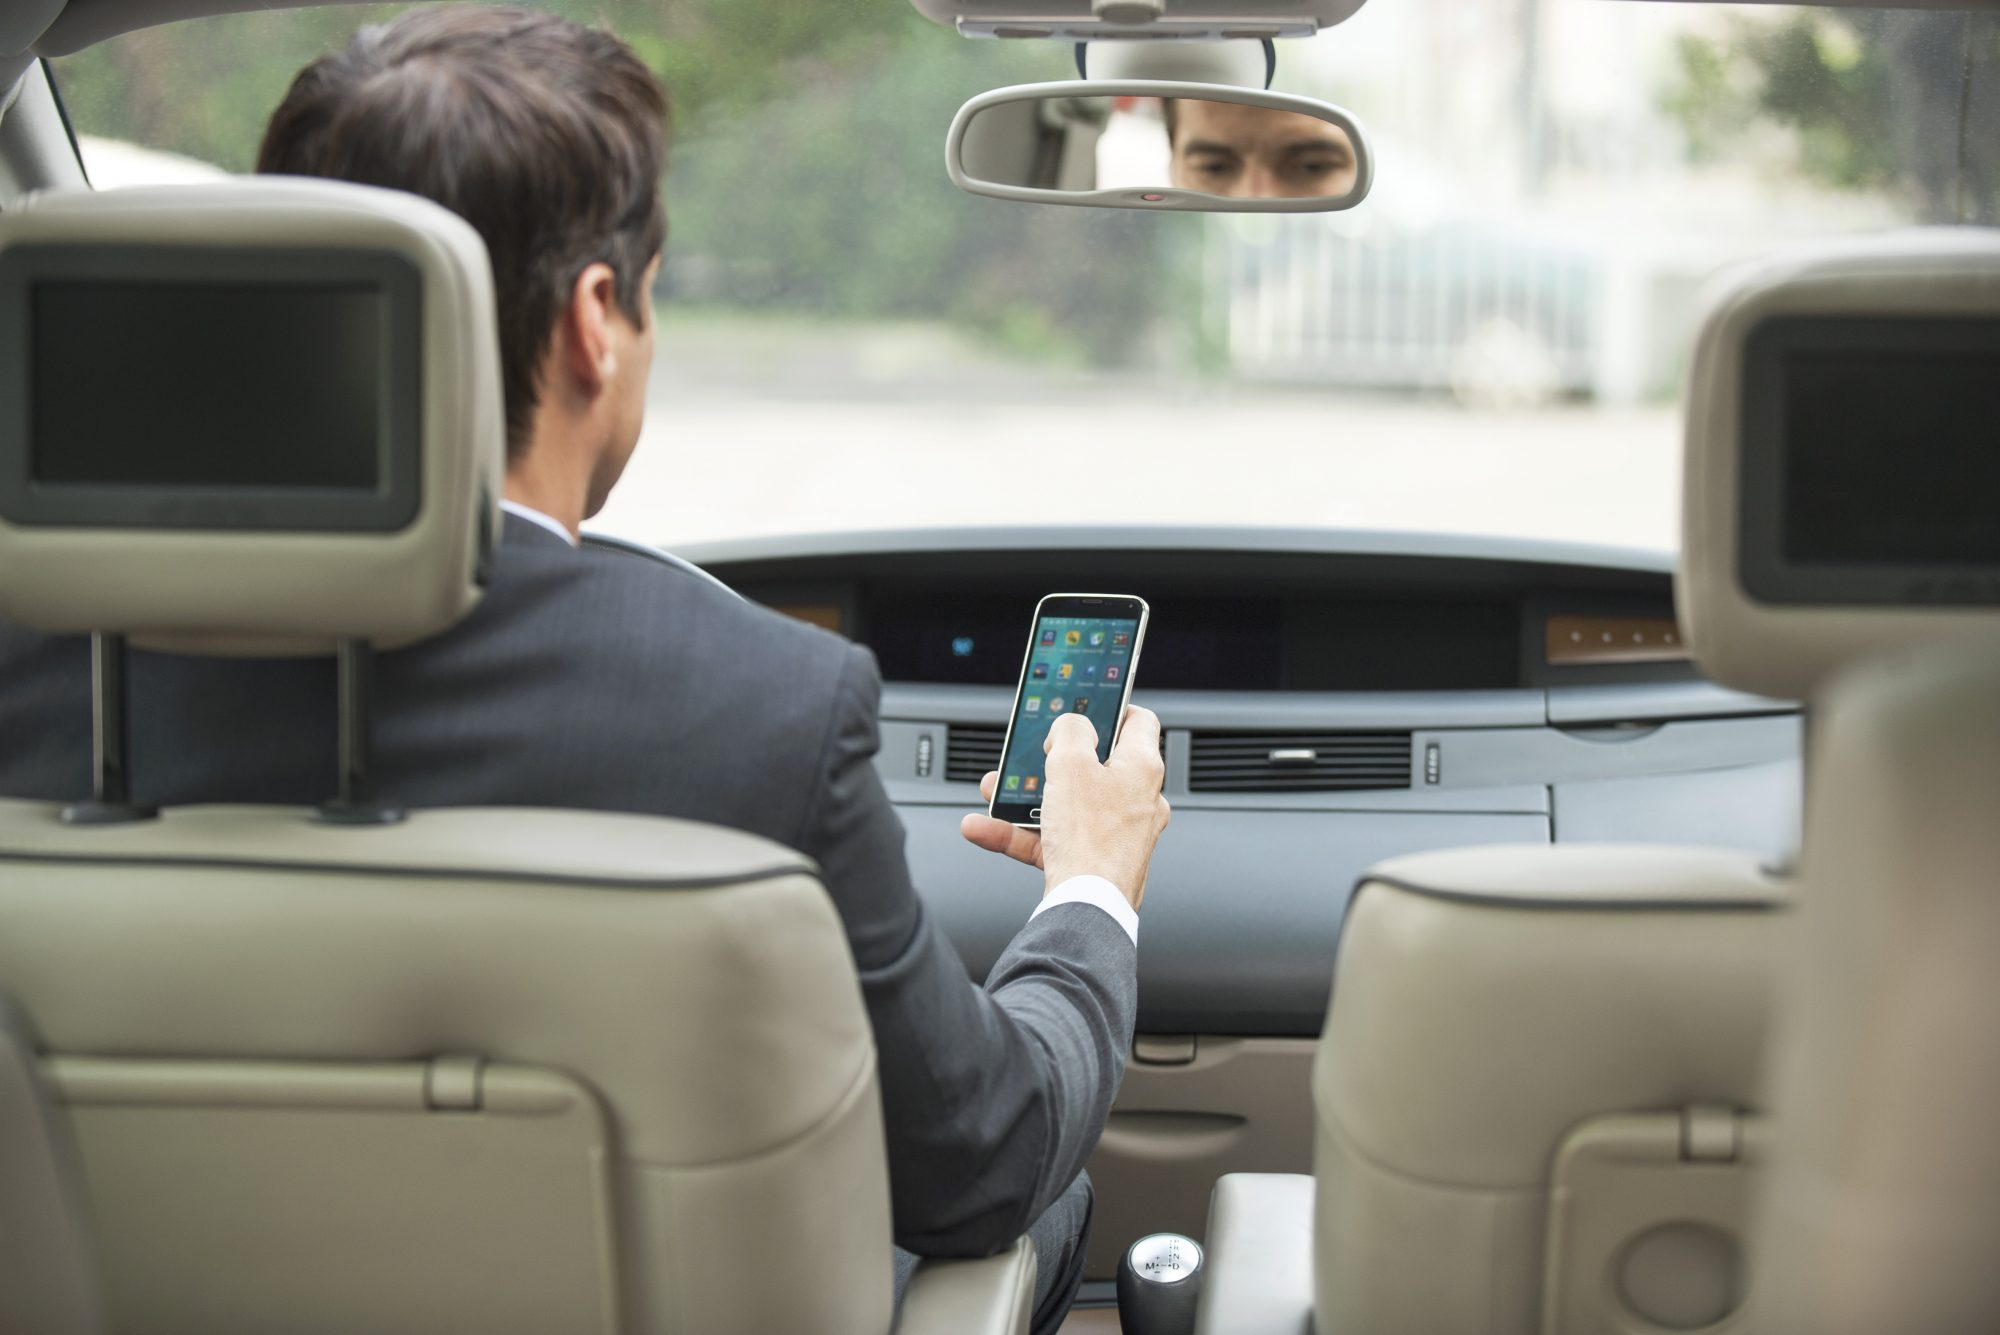 There's Now an App That Rewards You for Driving Without Using Your Phone